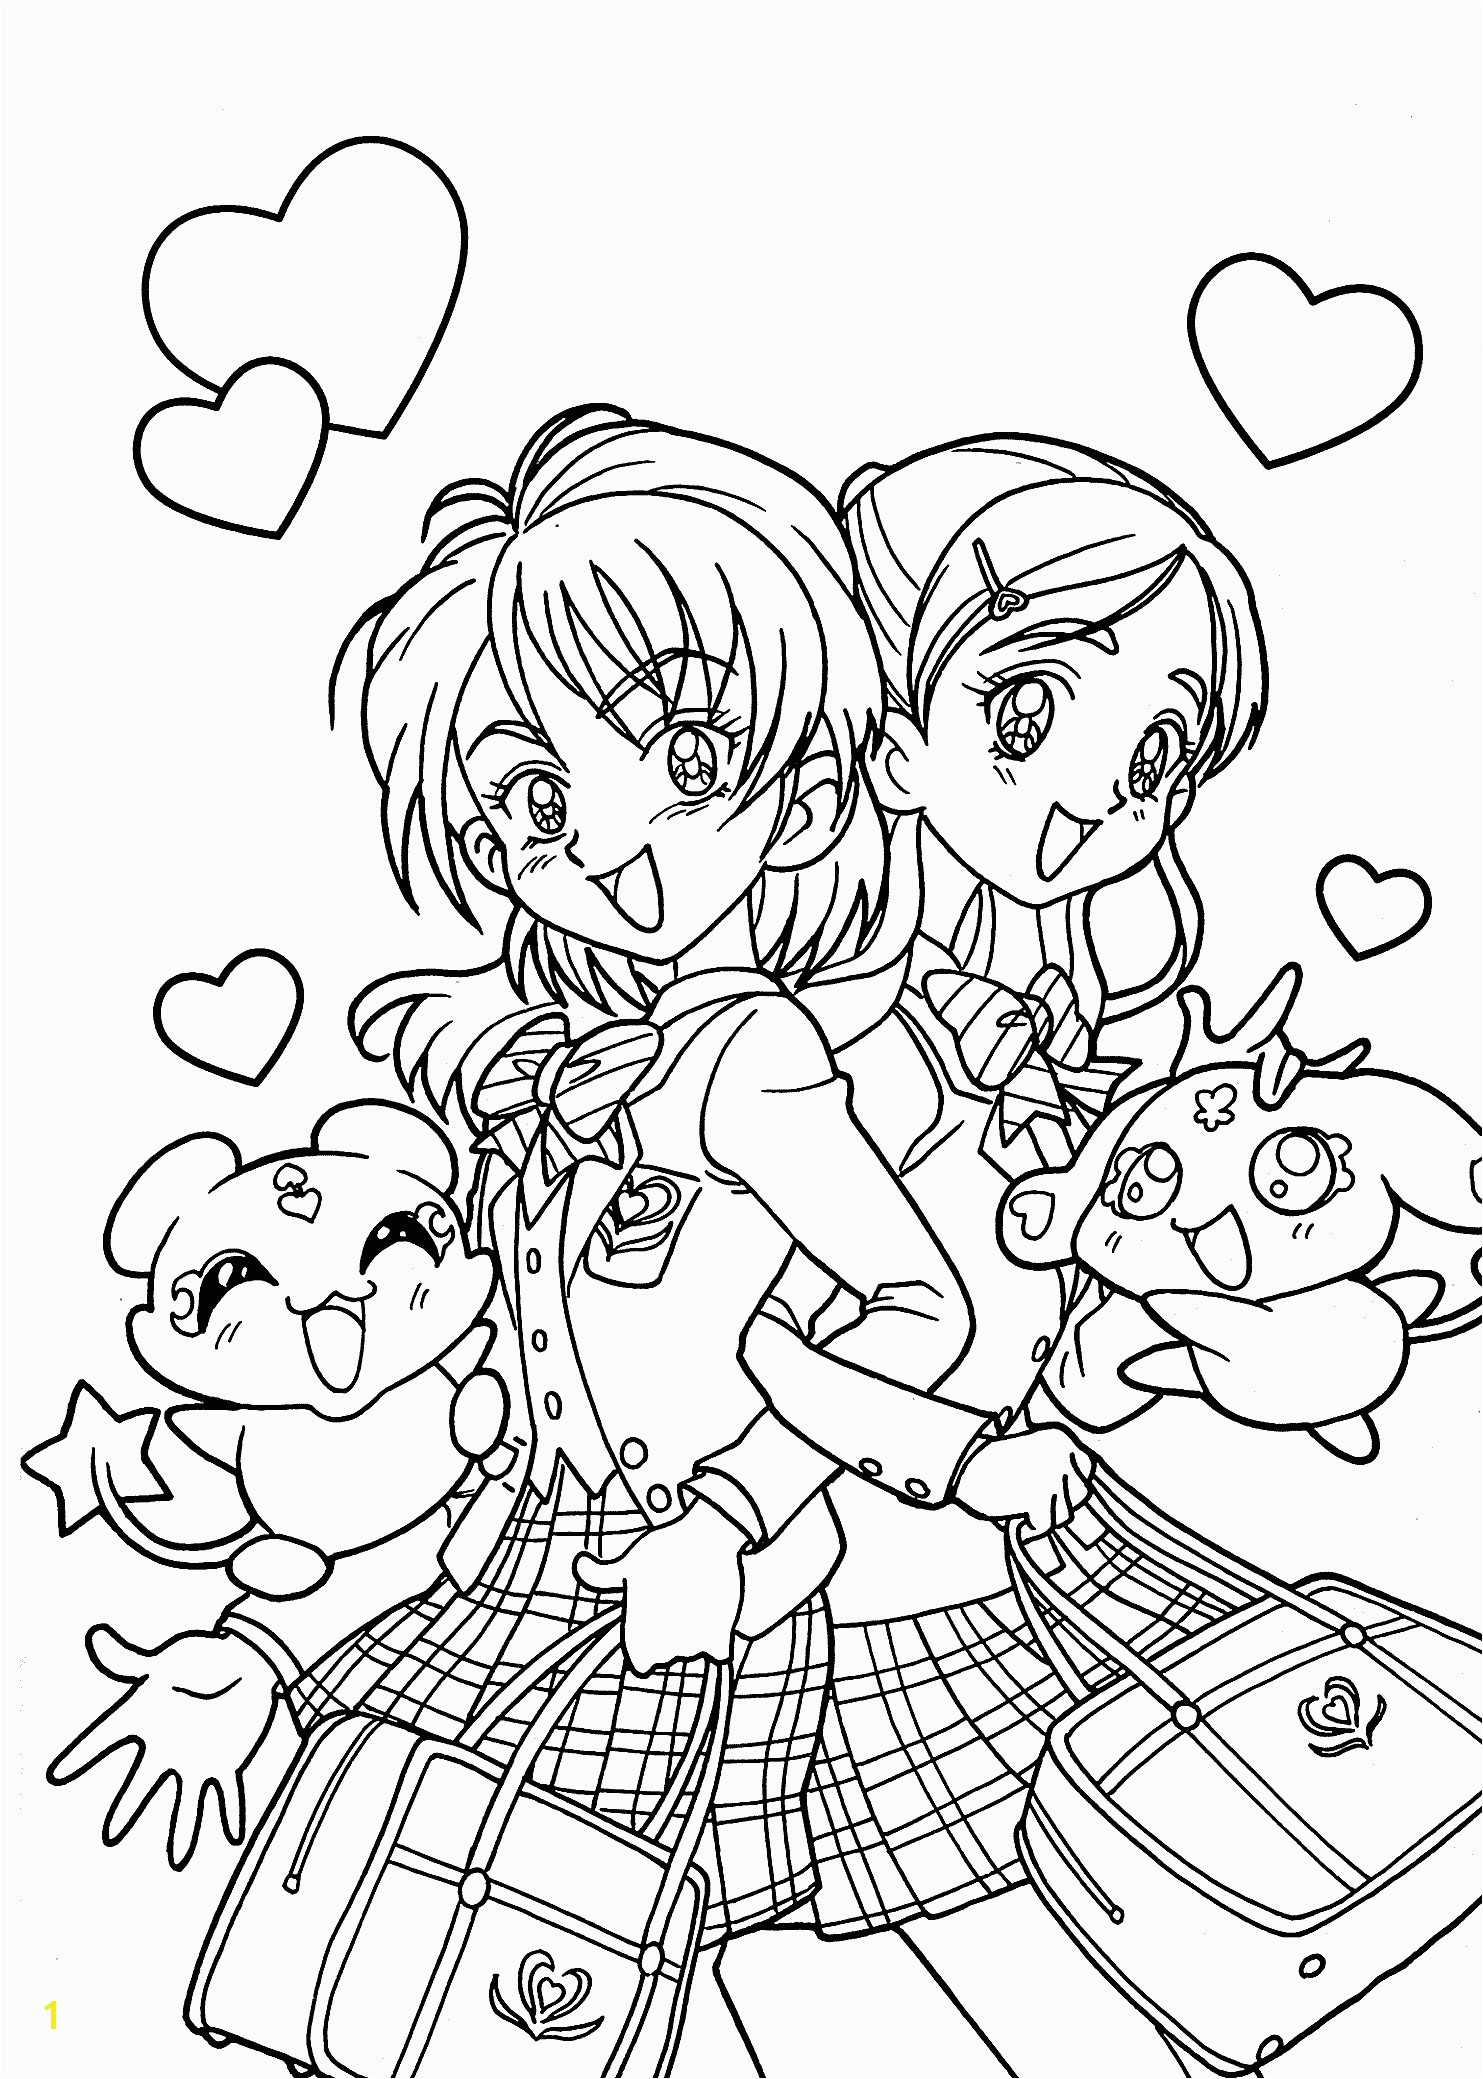 Printable Coloring Pages Girls Cute Anime Chibi Girl Coloring Pages Beautiful Printable Coloring